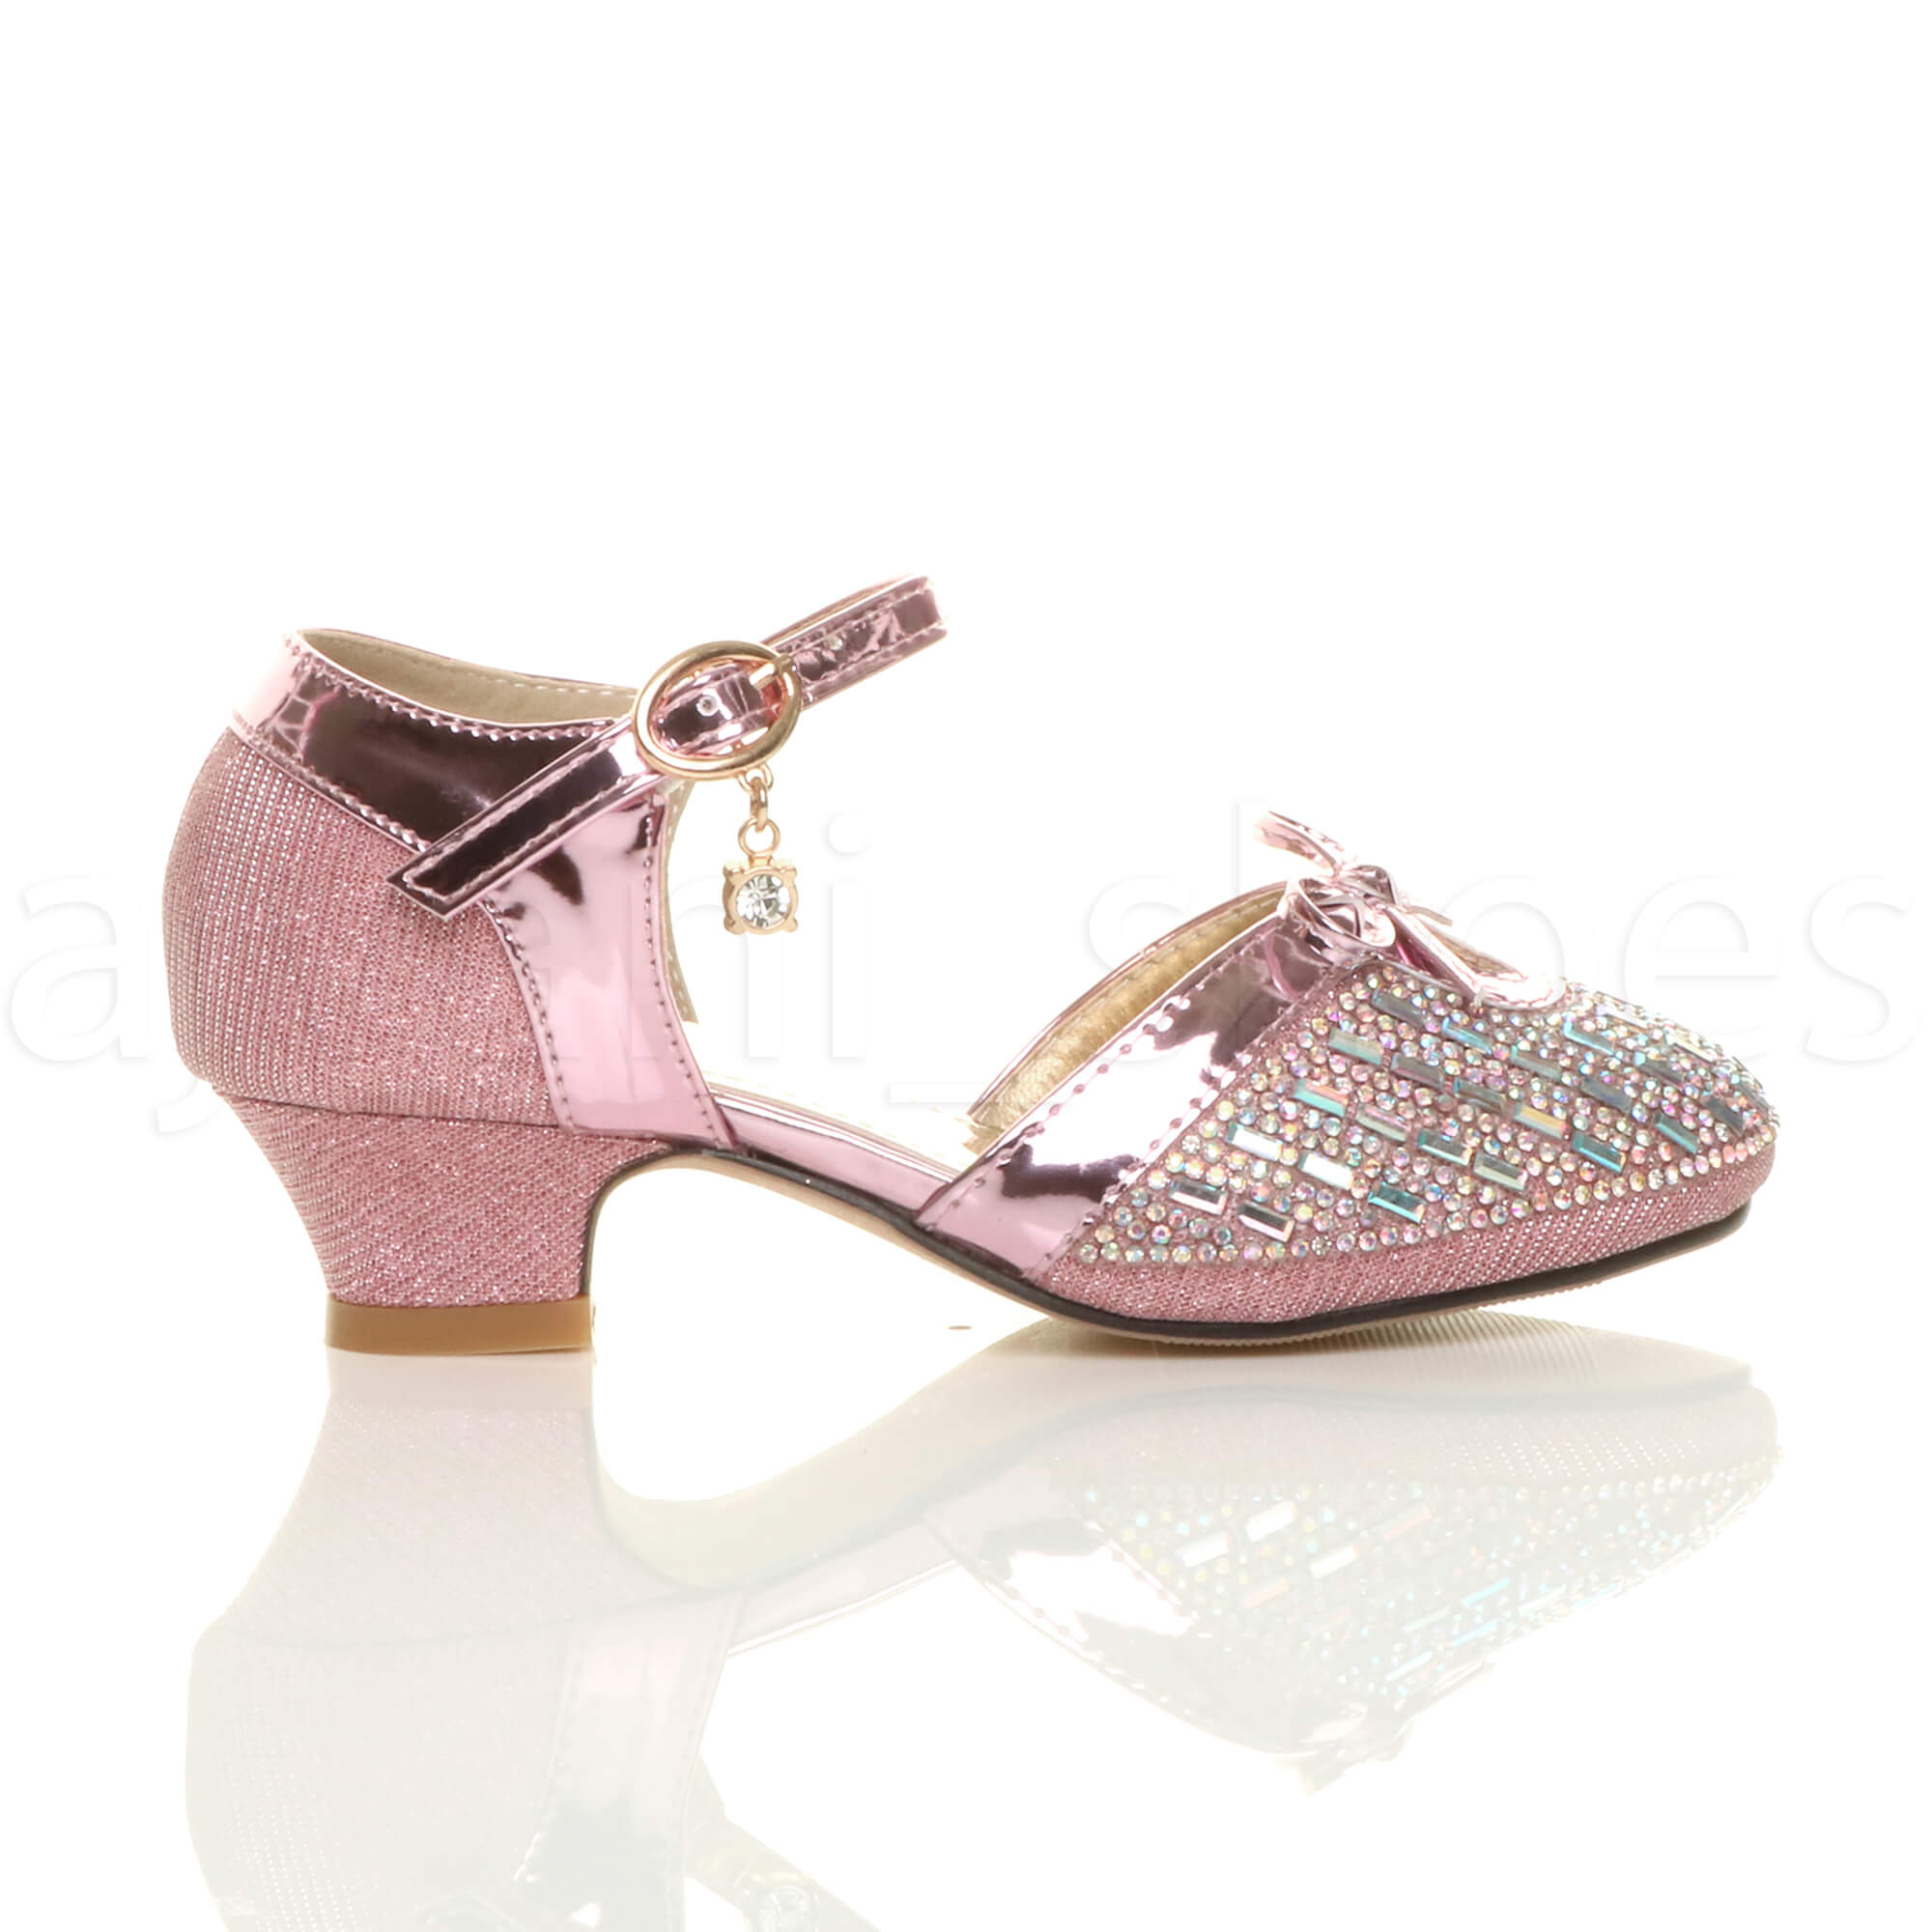 3e865d13b1e9 GIRLS KIDS CHILDRENS LOW HEEL DIAMANTE BOW BUCKLE STRAP COURT SHOES ...